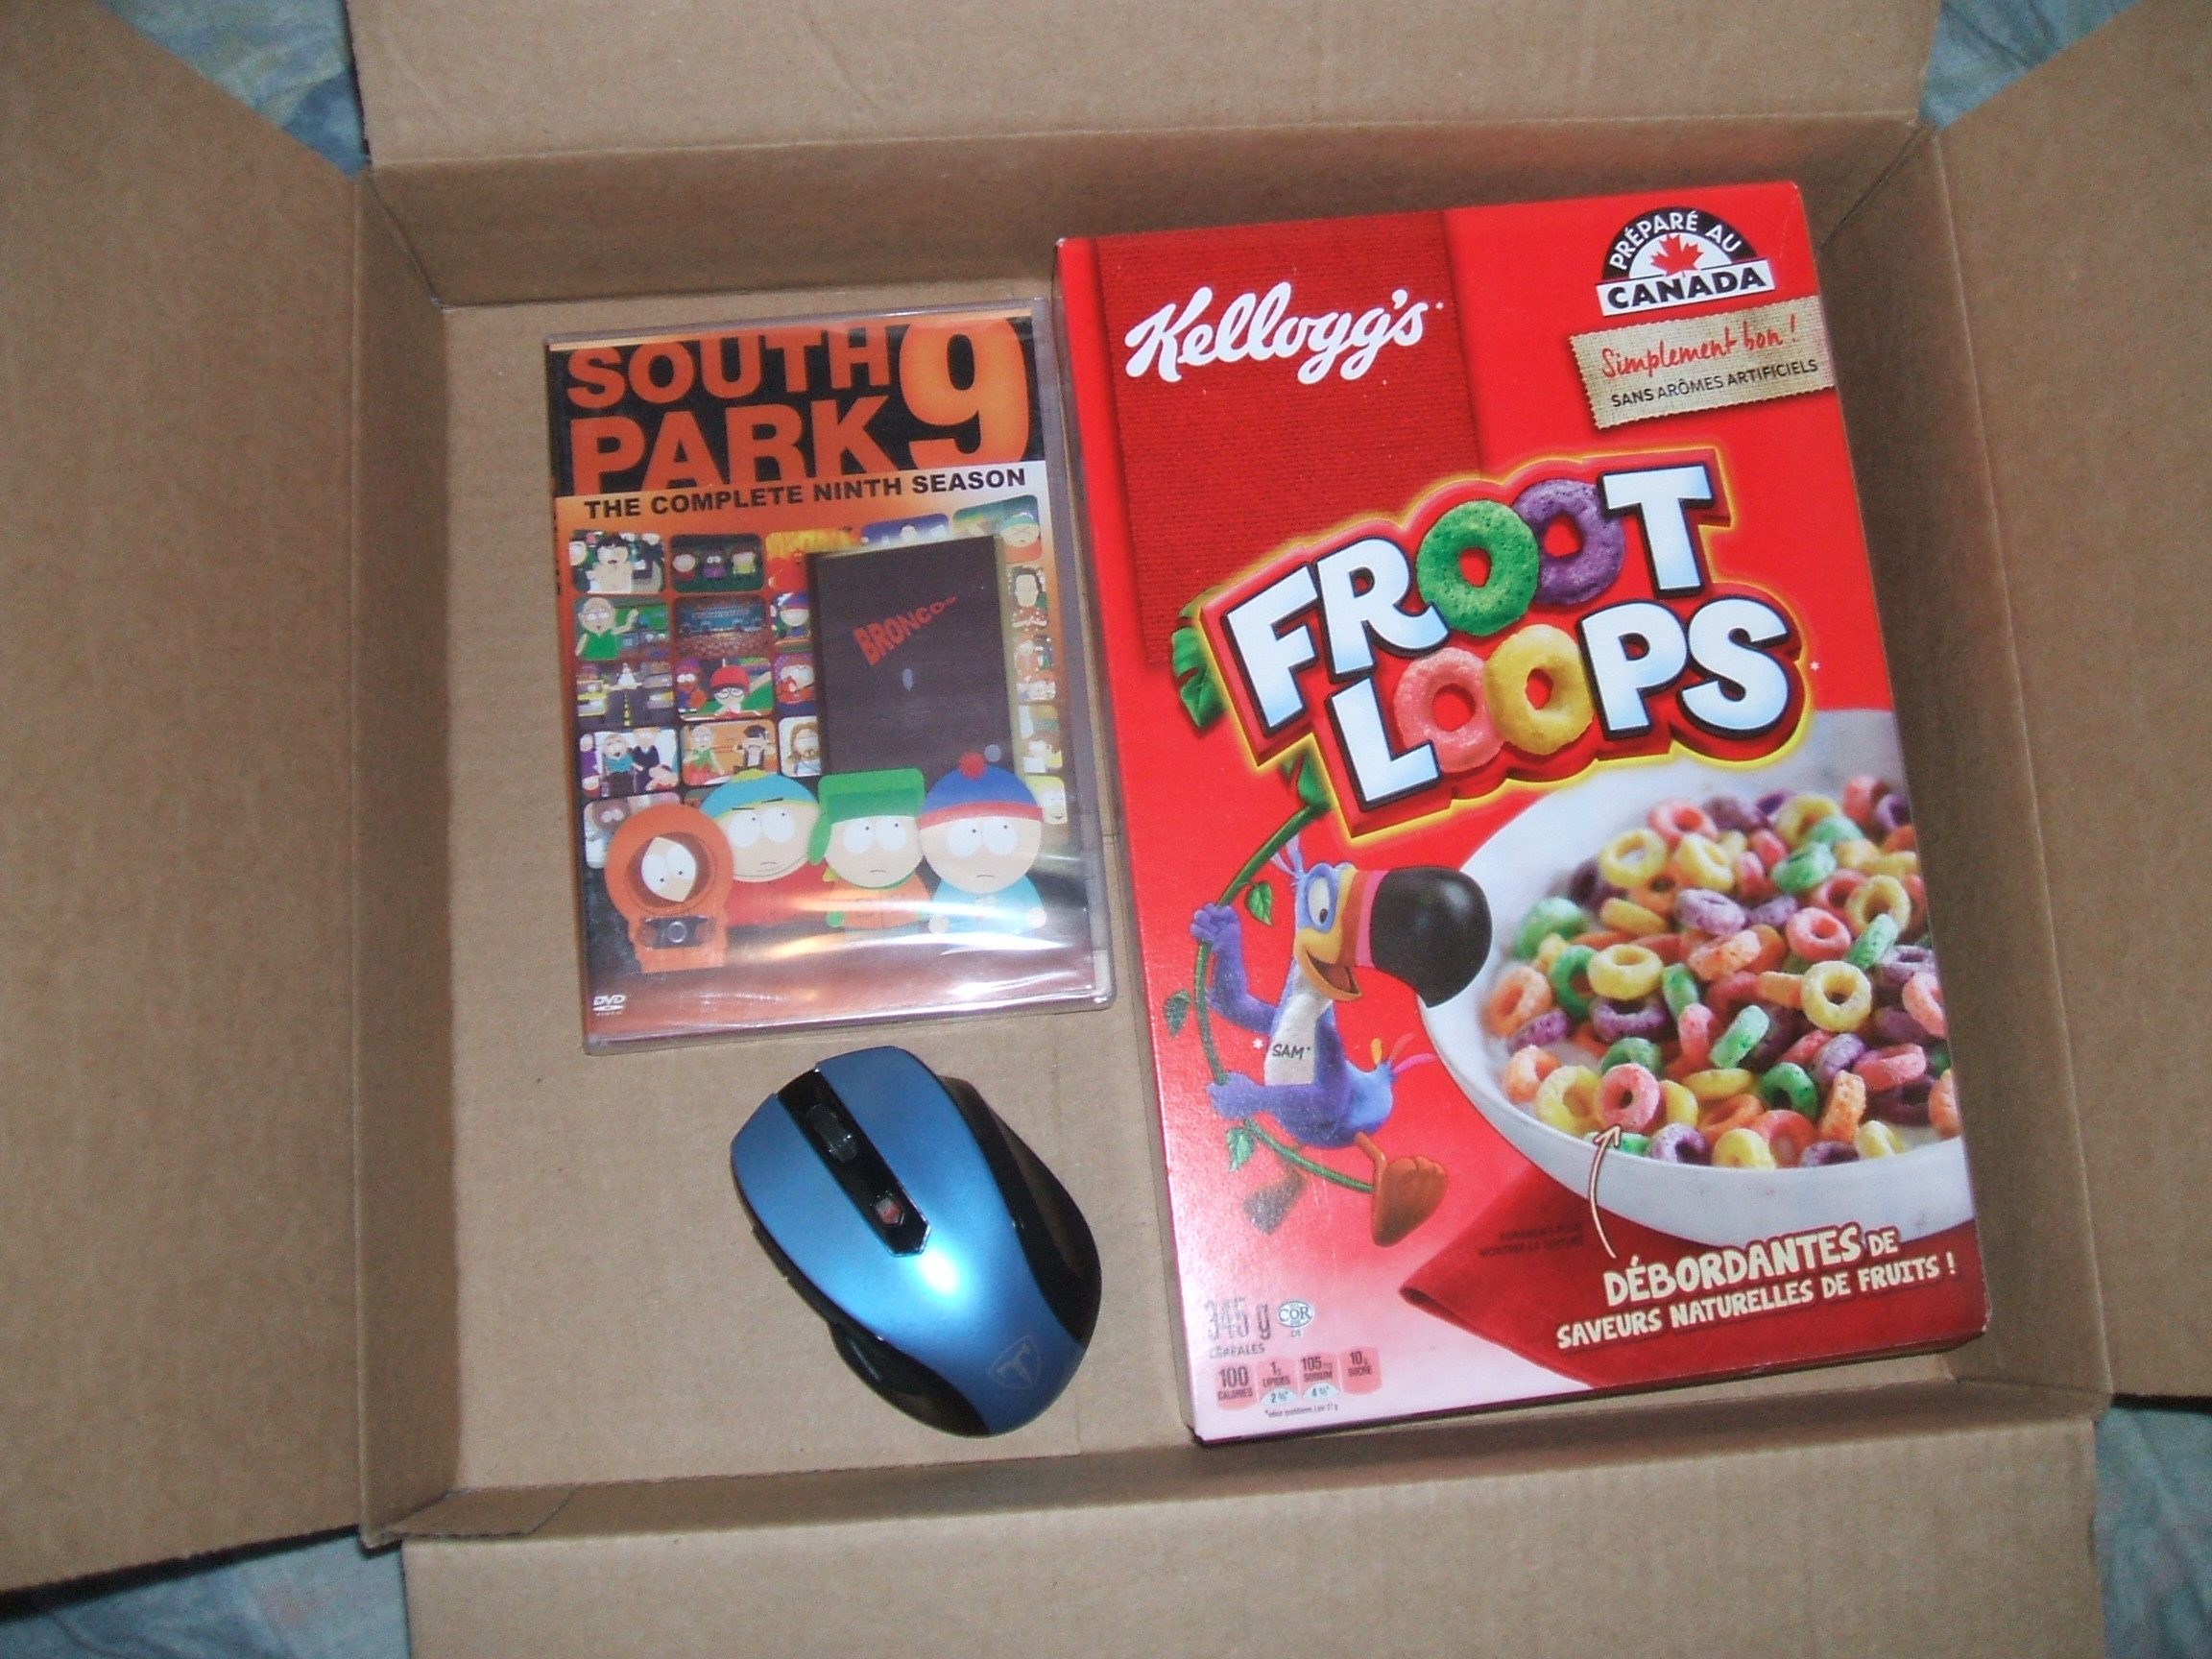 I got Mouse, South Park season 9, Froot Loops cereal from mail